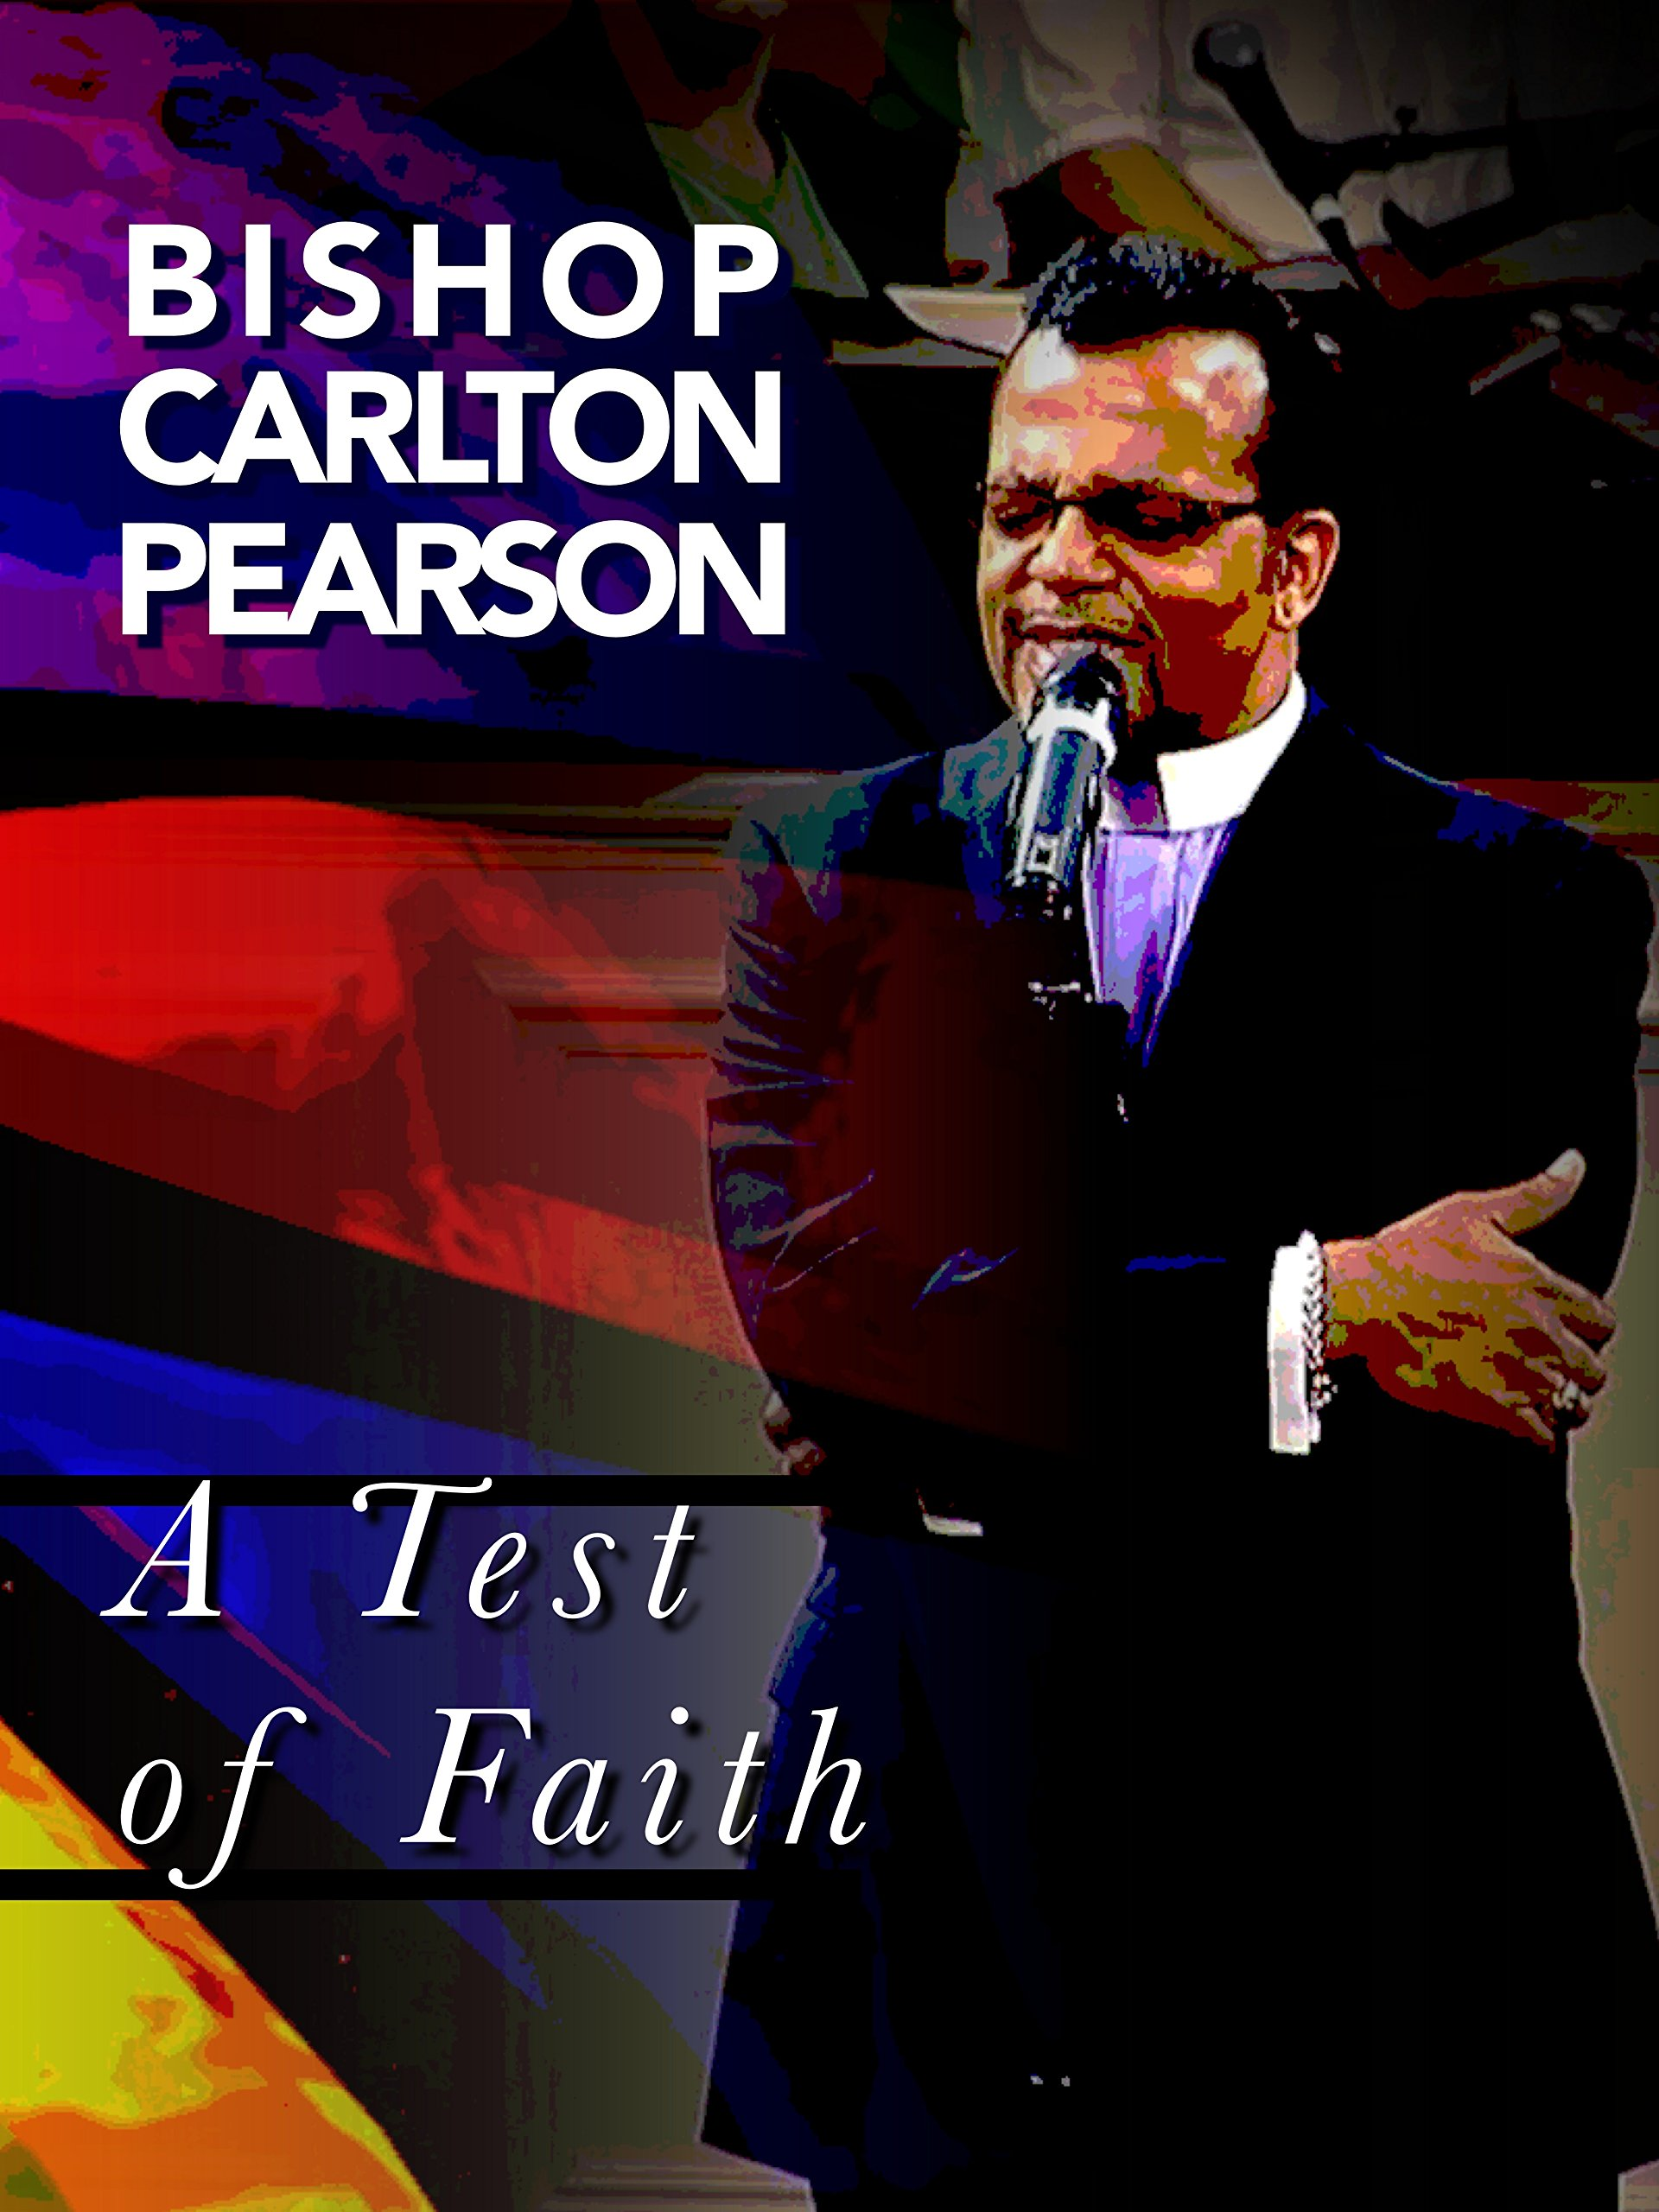 Bishop Carlton Pearson: A Test of Faith